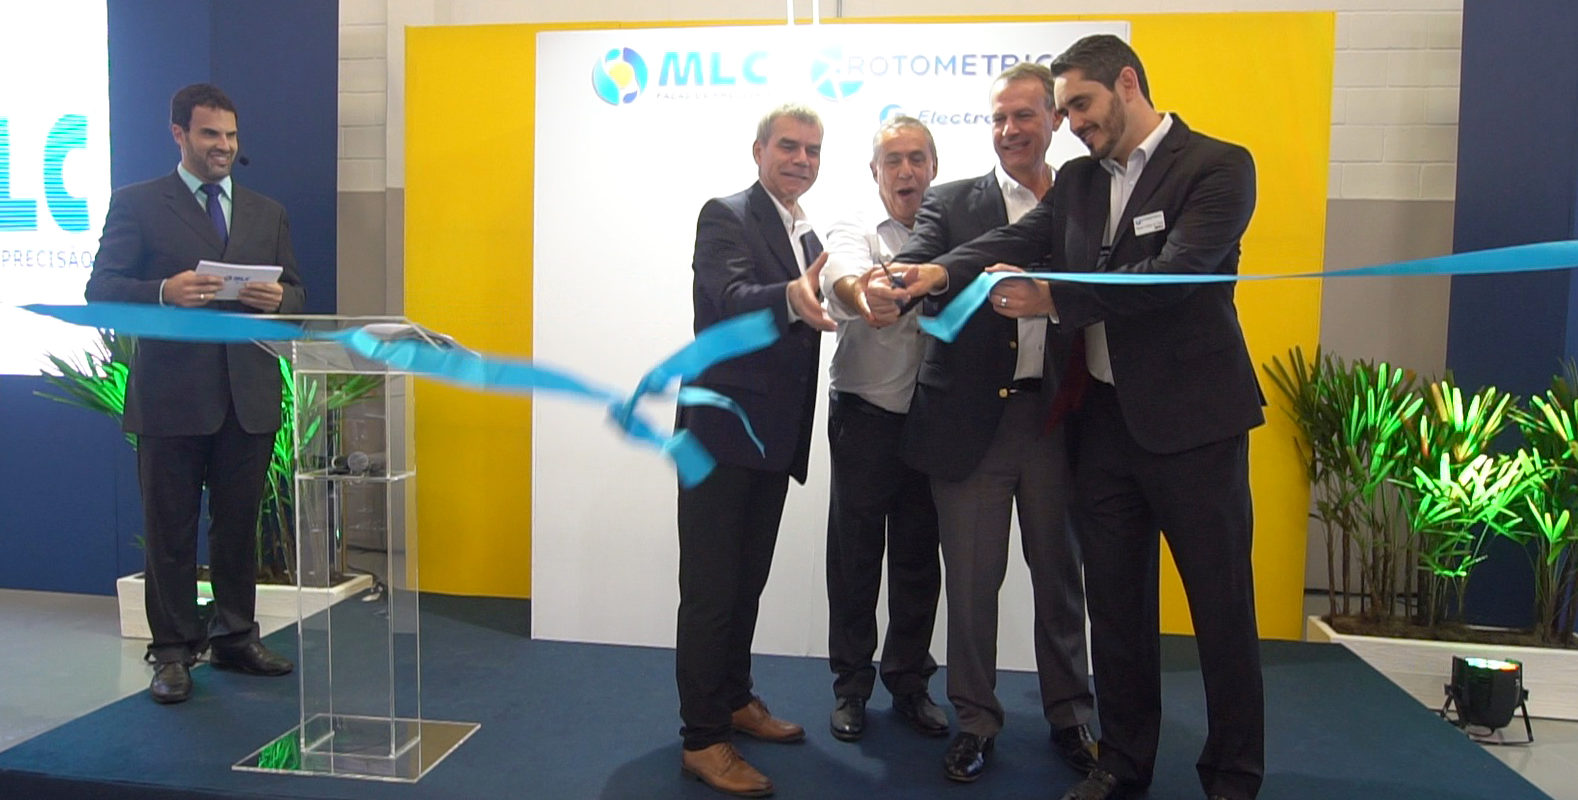 Ribbon cutting for grand opening of the new RotoMetrics / MLC flexible die plant in São Paulo, Brazil.